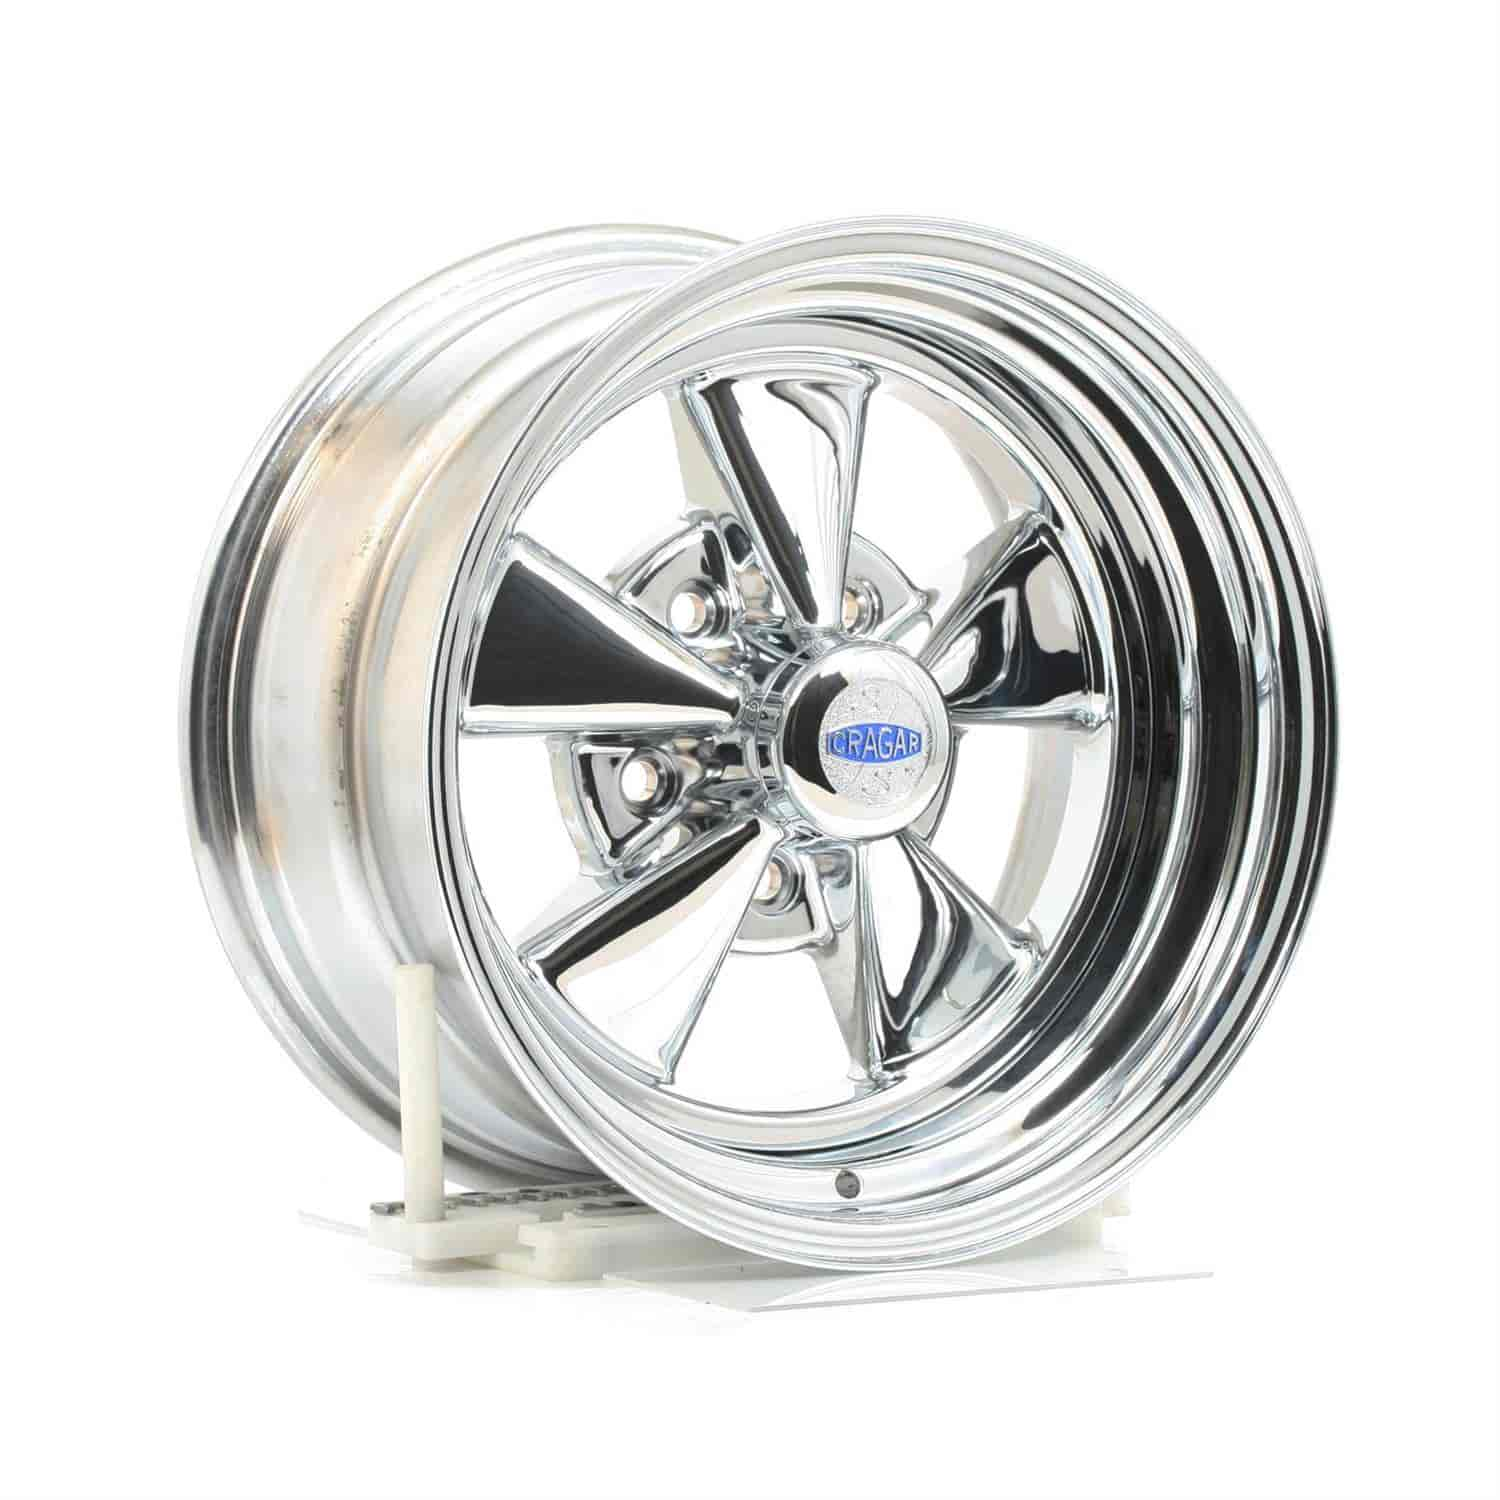 cragar 61c583442 61c s s direct drill chrome wheel size 15 x 8 1957 Ford Steering Wheel cragar 61c583442